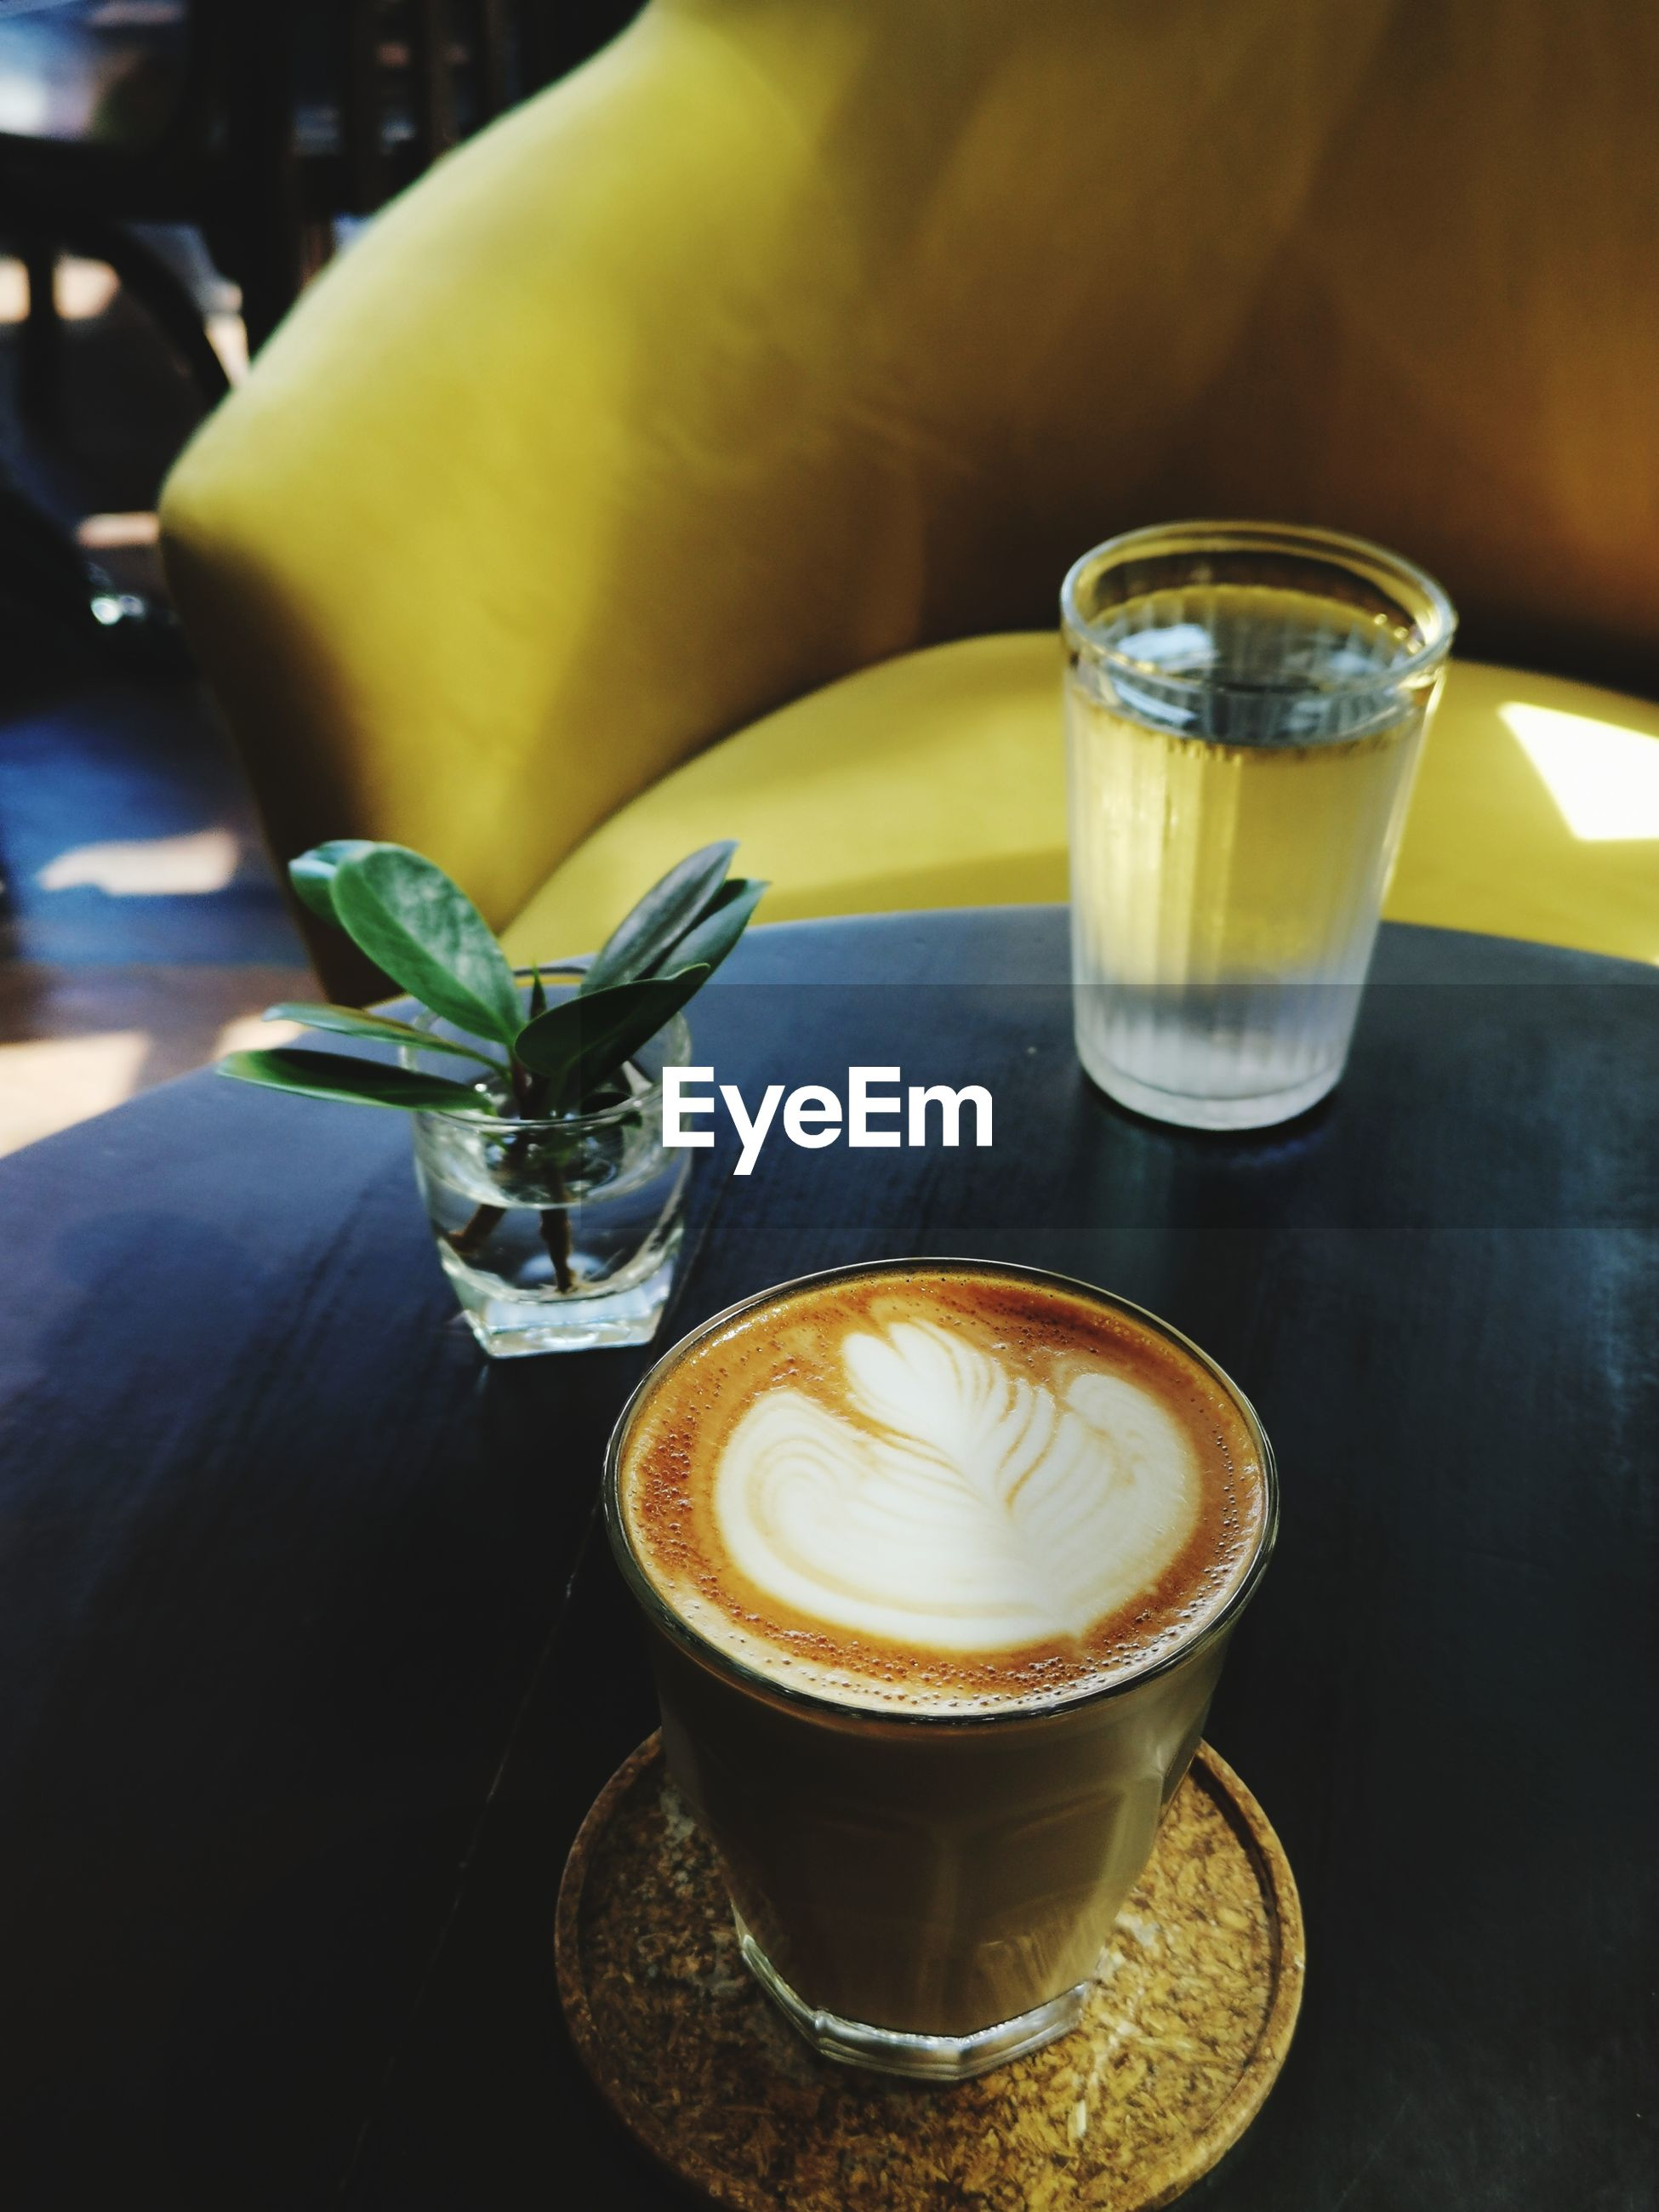 CLOSE-UP OF COFFEE CUP WITH DRINK ON TABLE